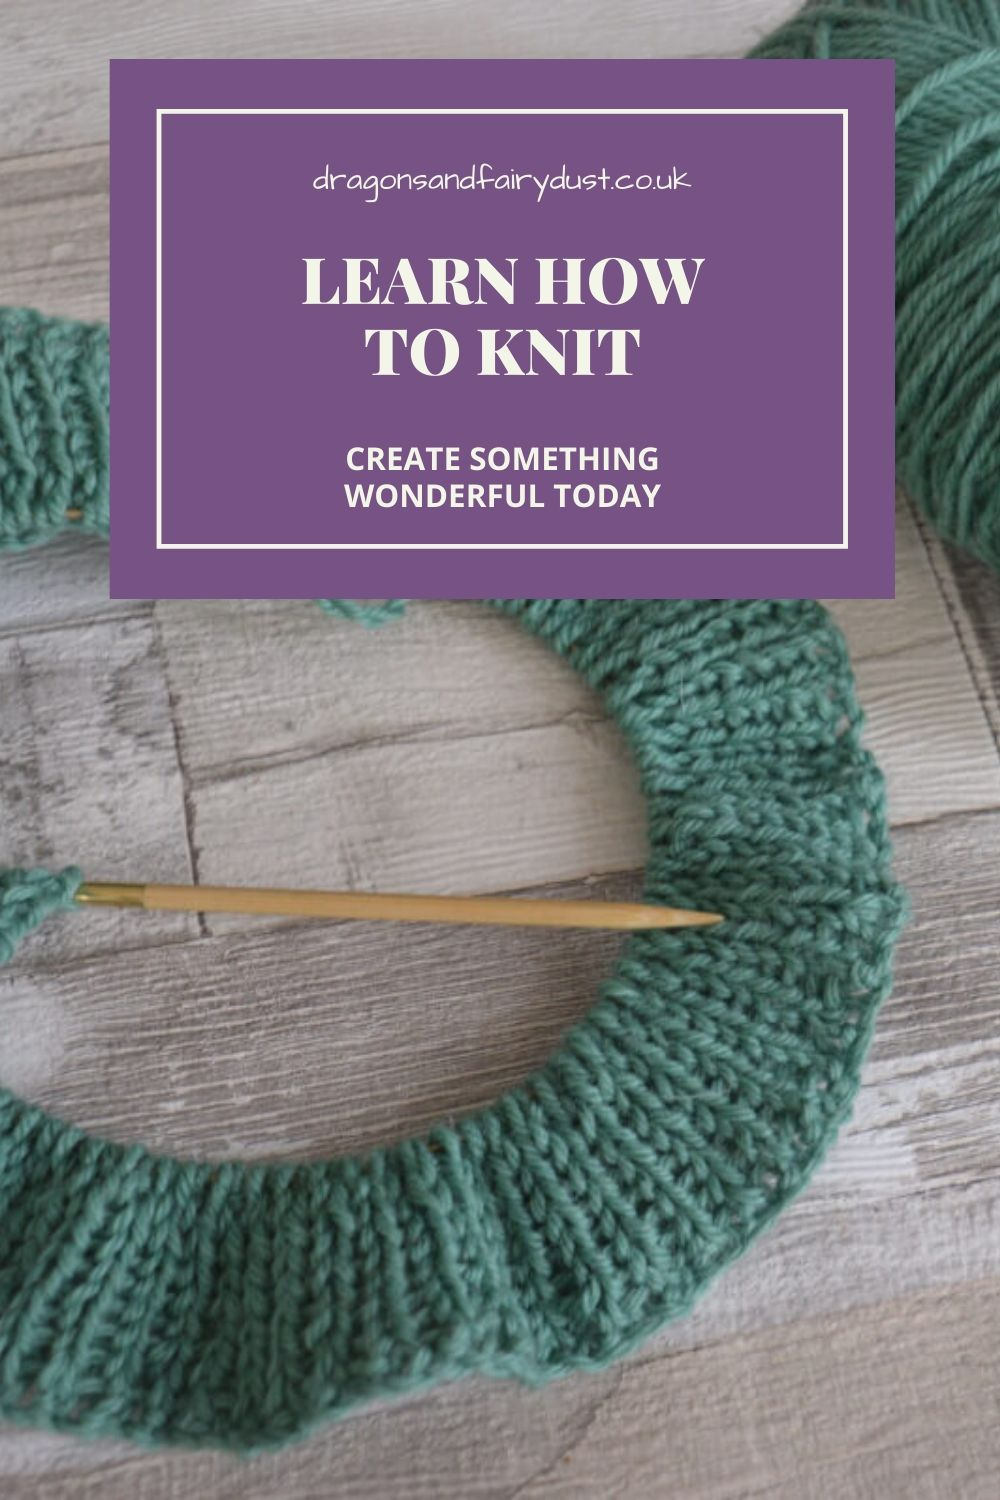 Why not learn how to knit and create something for yourself?